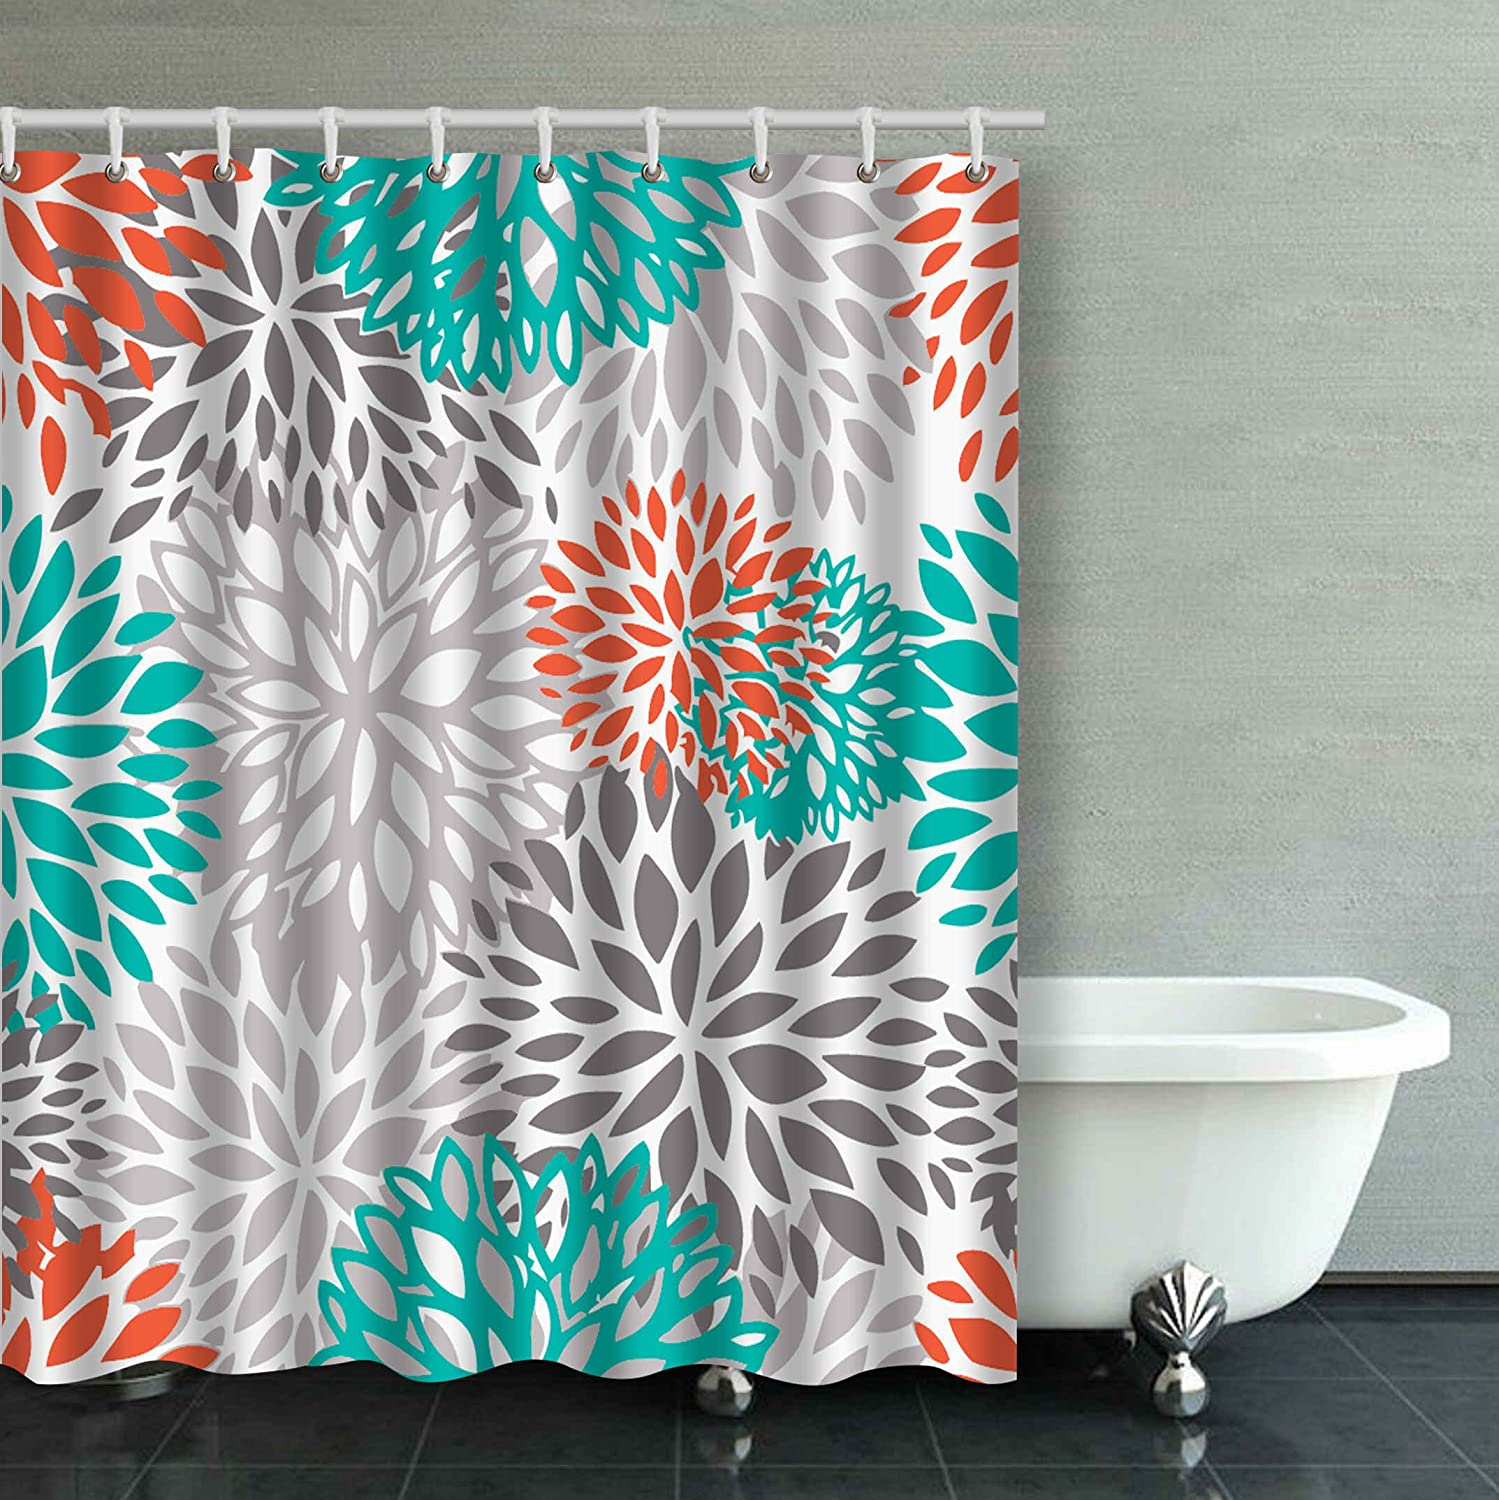 Accrocn Waterproof Shower Curtain Curtains Fabric Orange Gray and ...